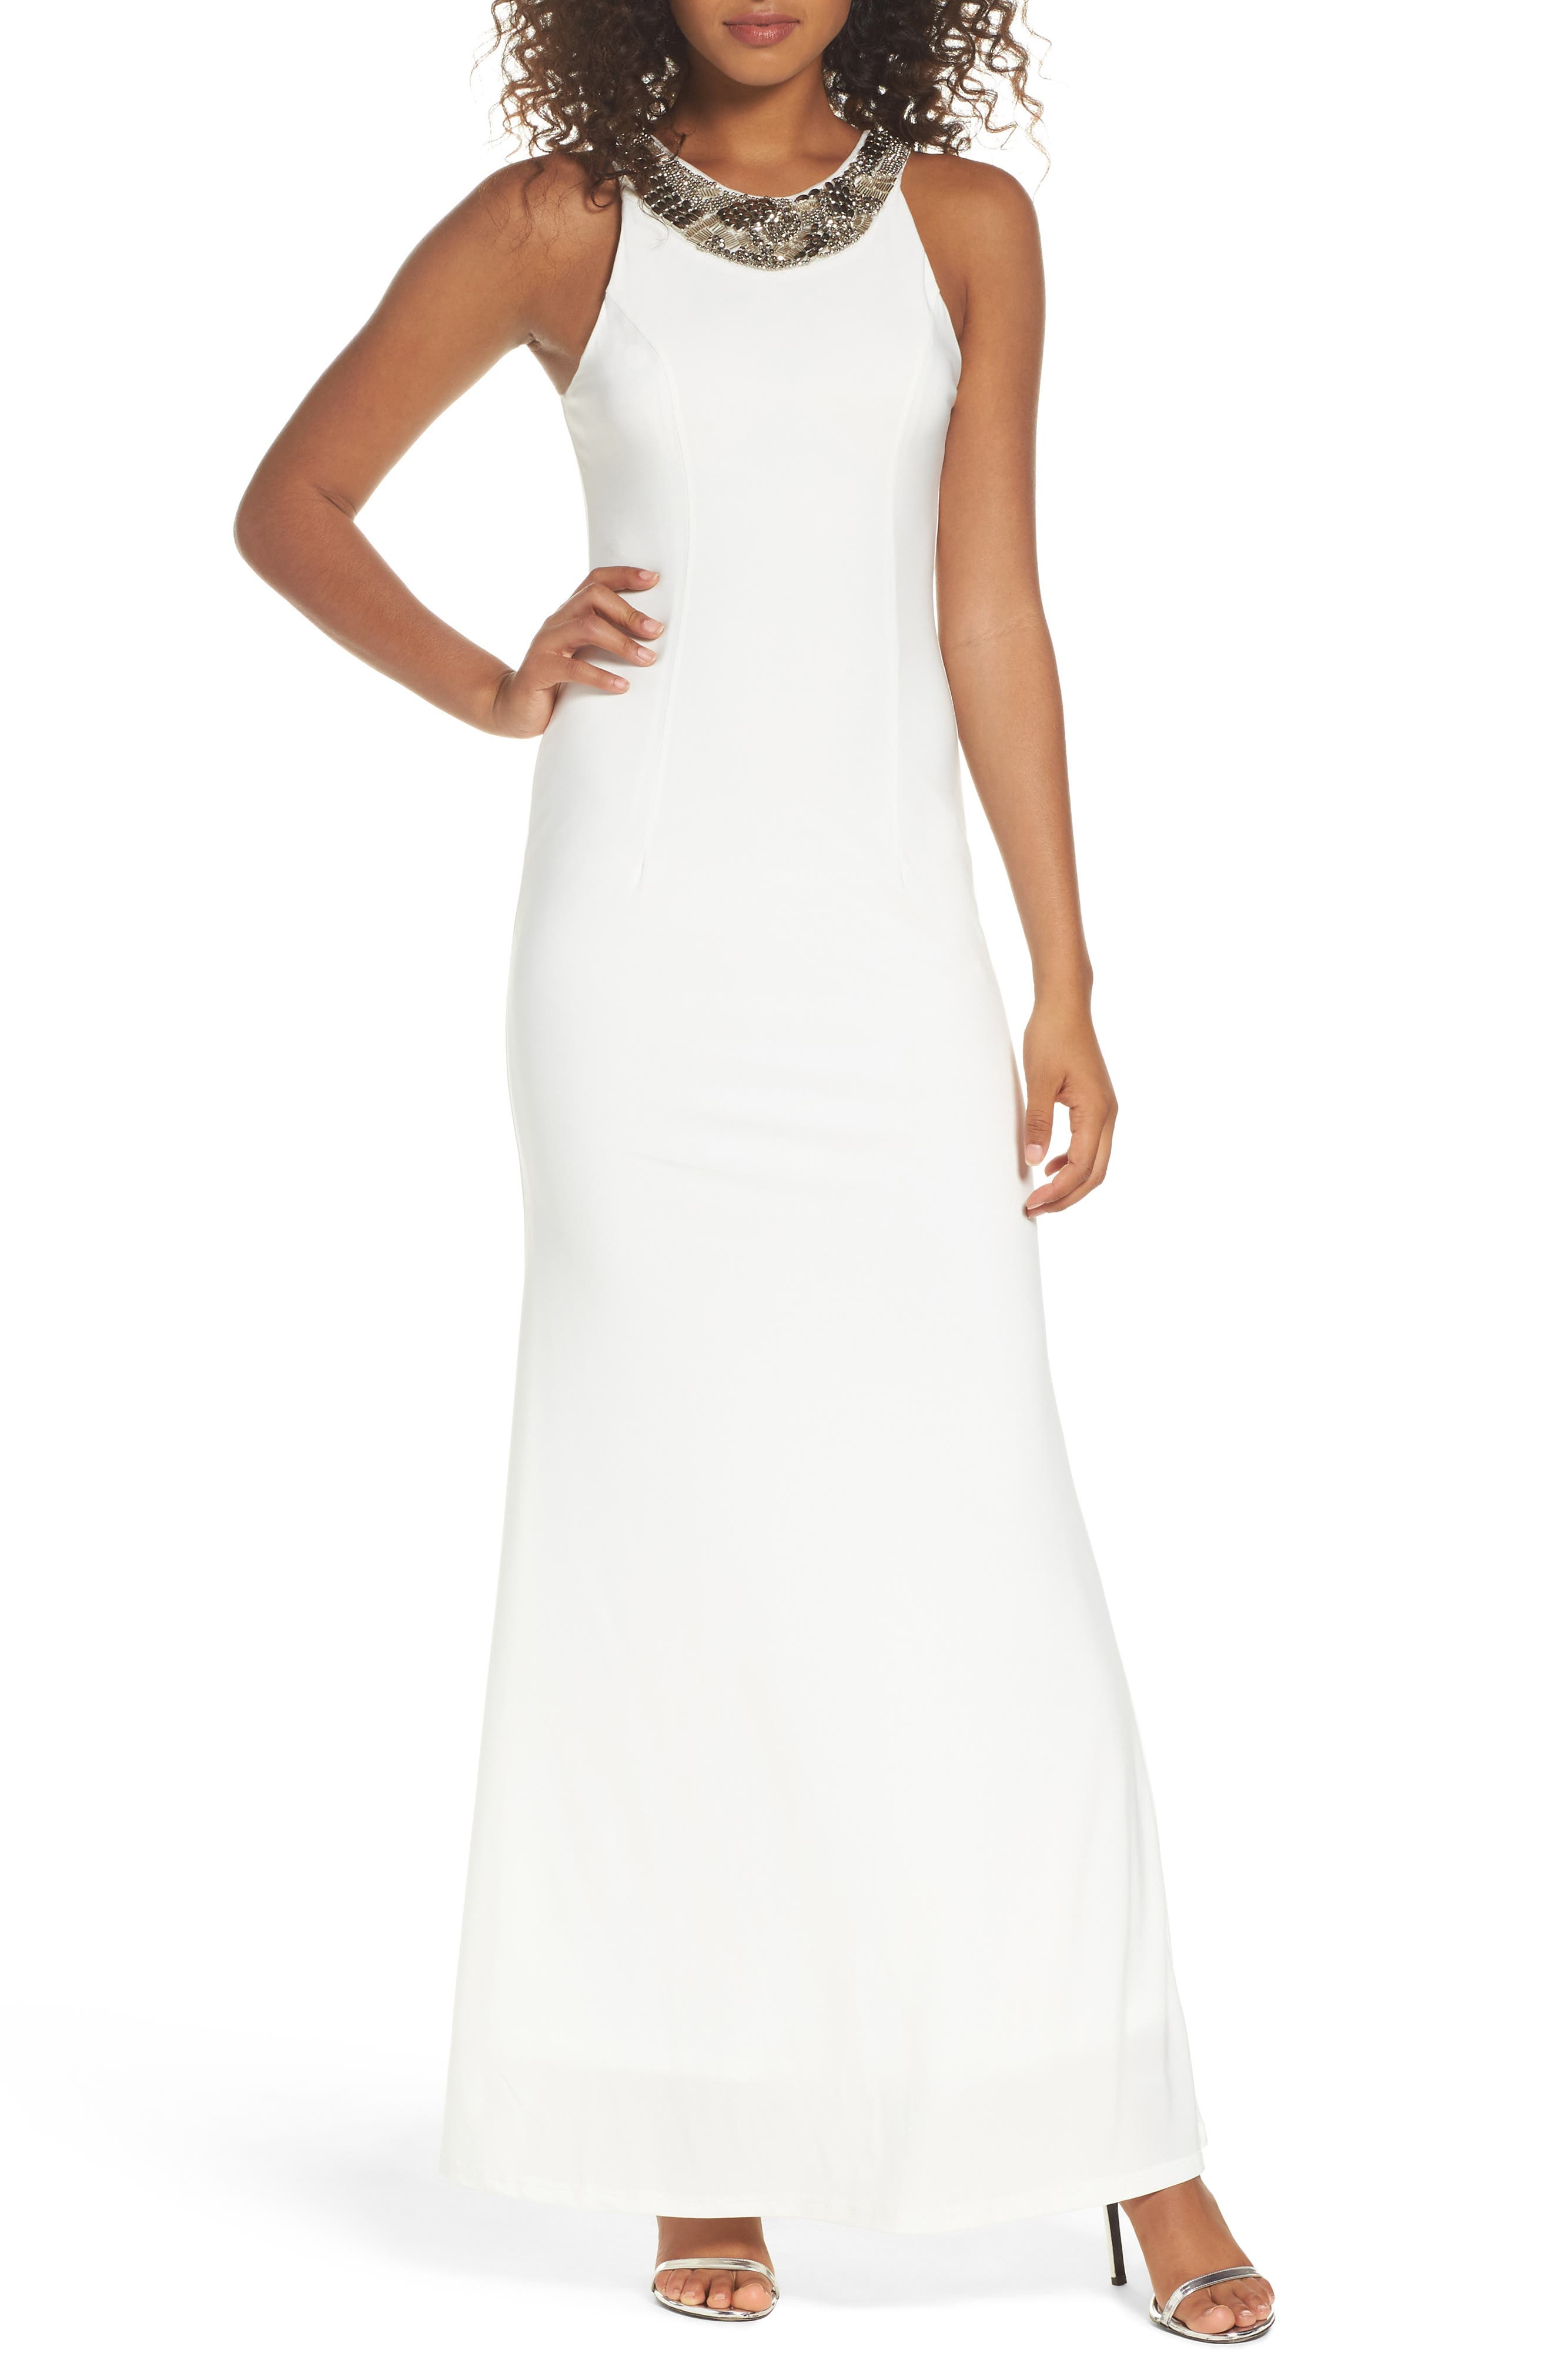 Pledging My Love Beaded Gown,                         Main,                         color, White